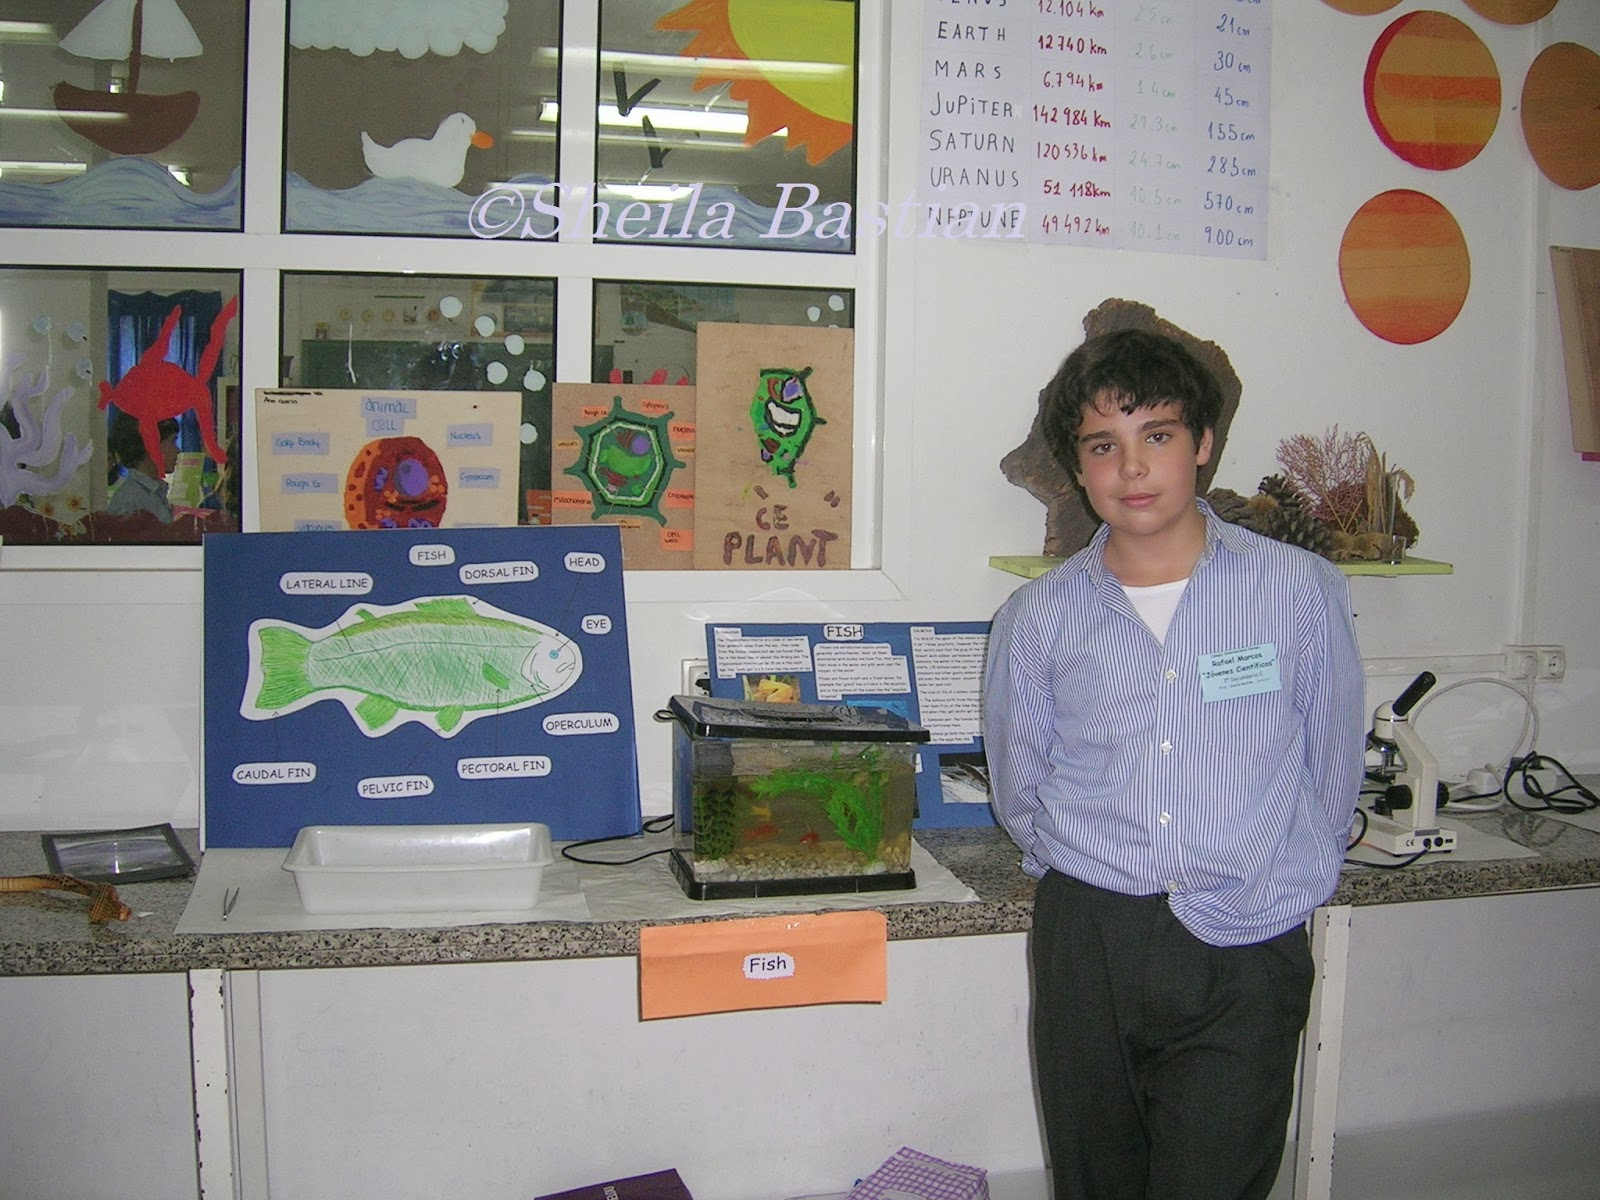 Science magazine science fair project fish by rafael for Fishing science fair projects